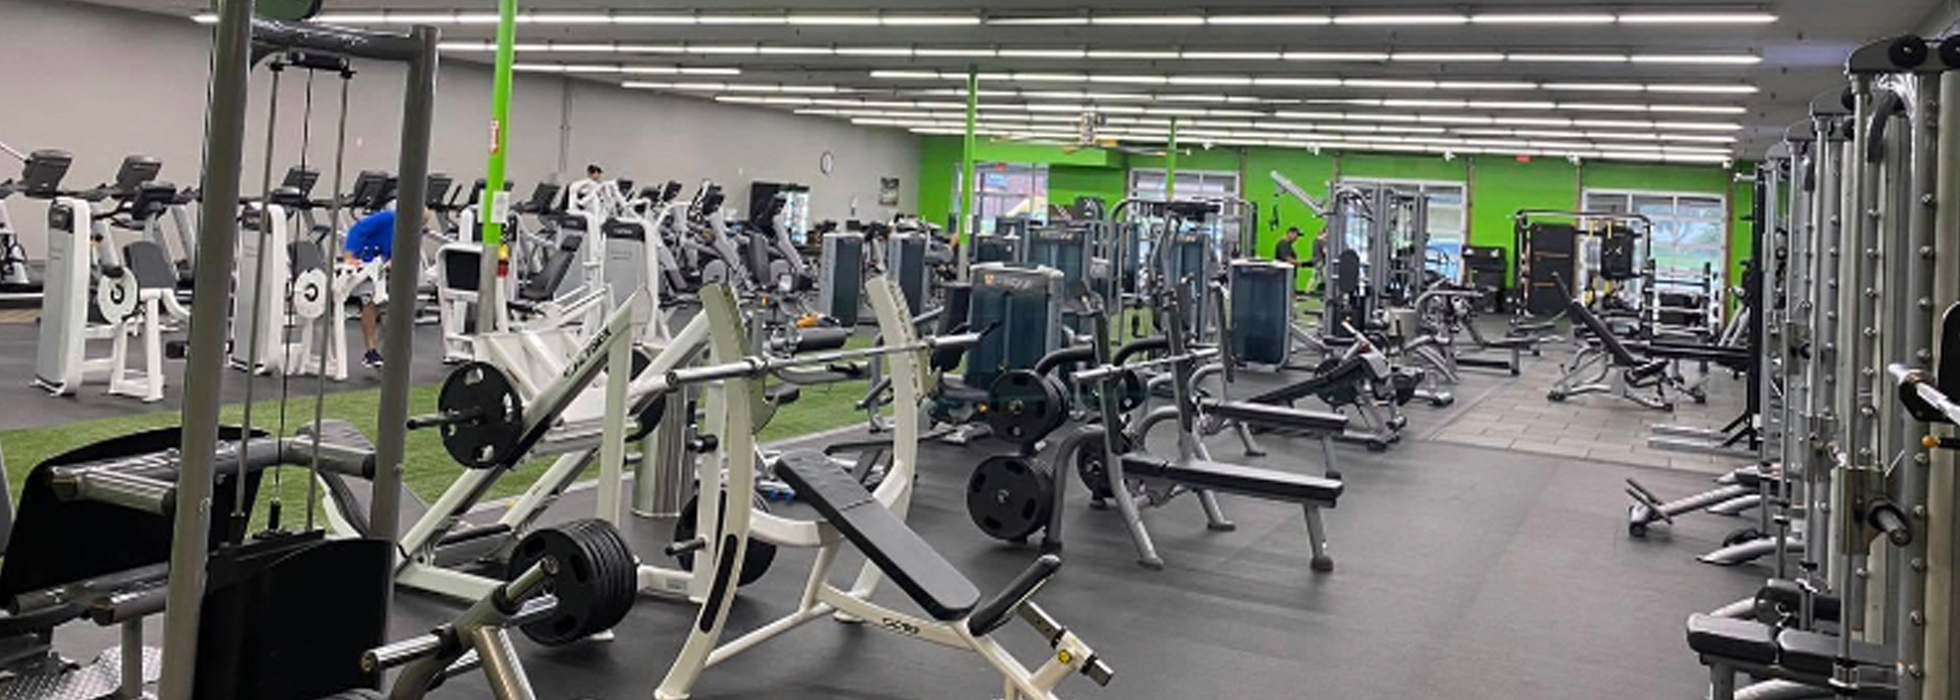 Why Focus Fit Gym Is Ranked One Of The Best Gyms near Brooksville FL